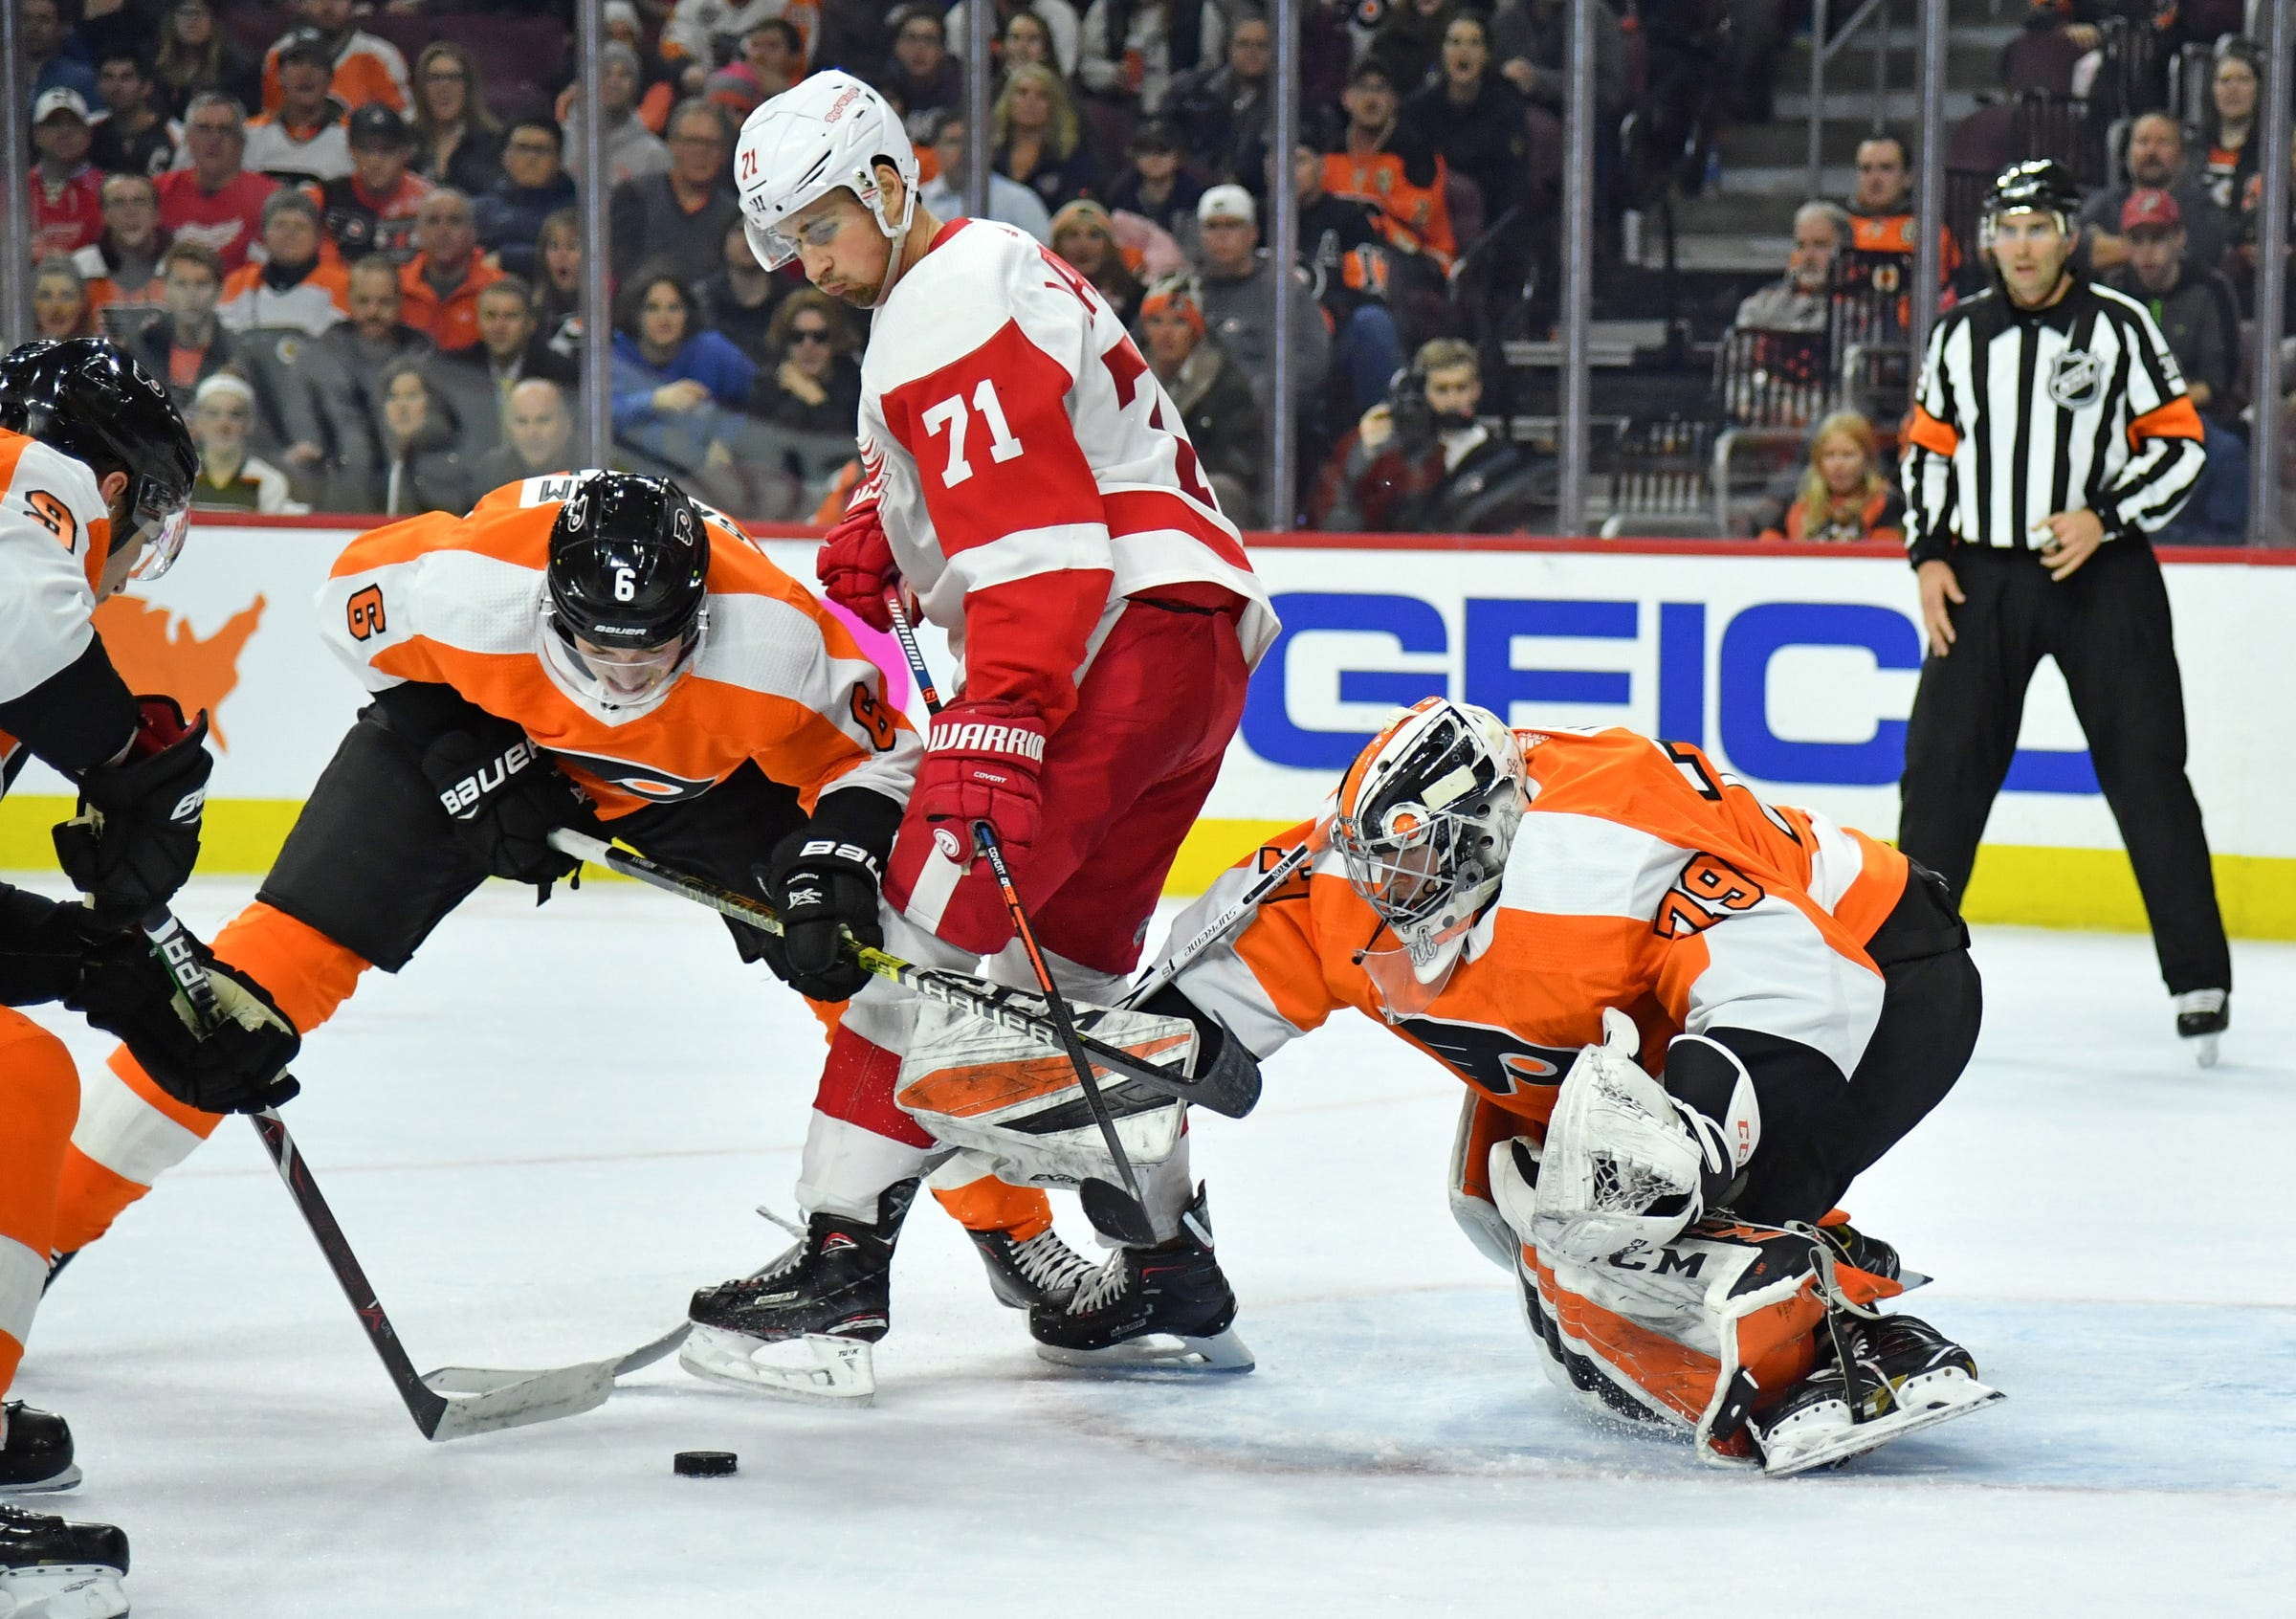 1f7e263f0c6 ... 2019 Detroit Red Wings vs. Philadelphia Flyers  Home-and-home with 1 of  NHL s hottest teams. Detroit Free Press - 05 55 AM ET February 16